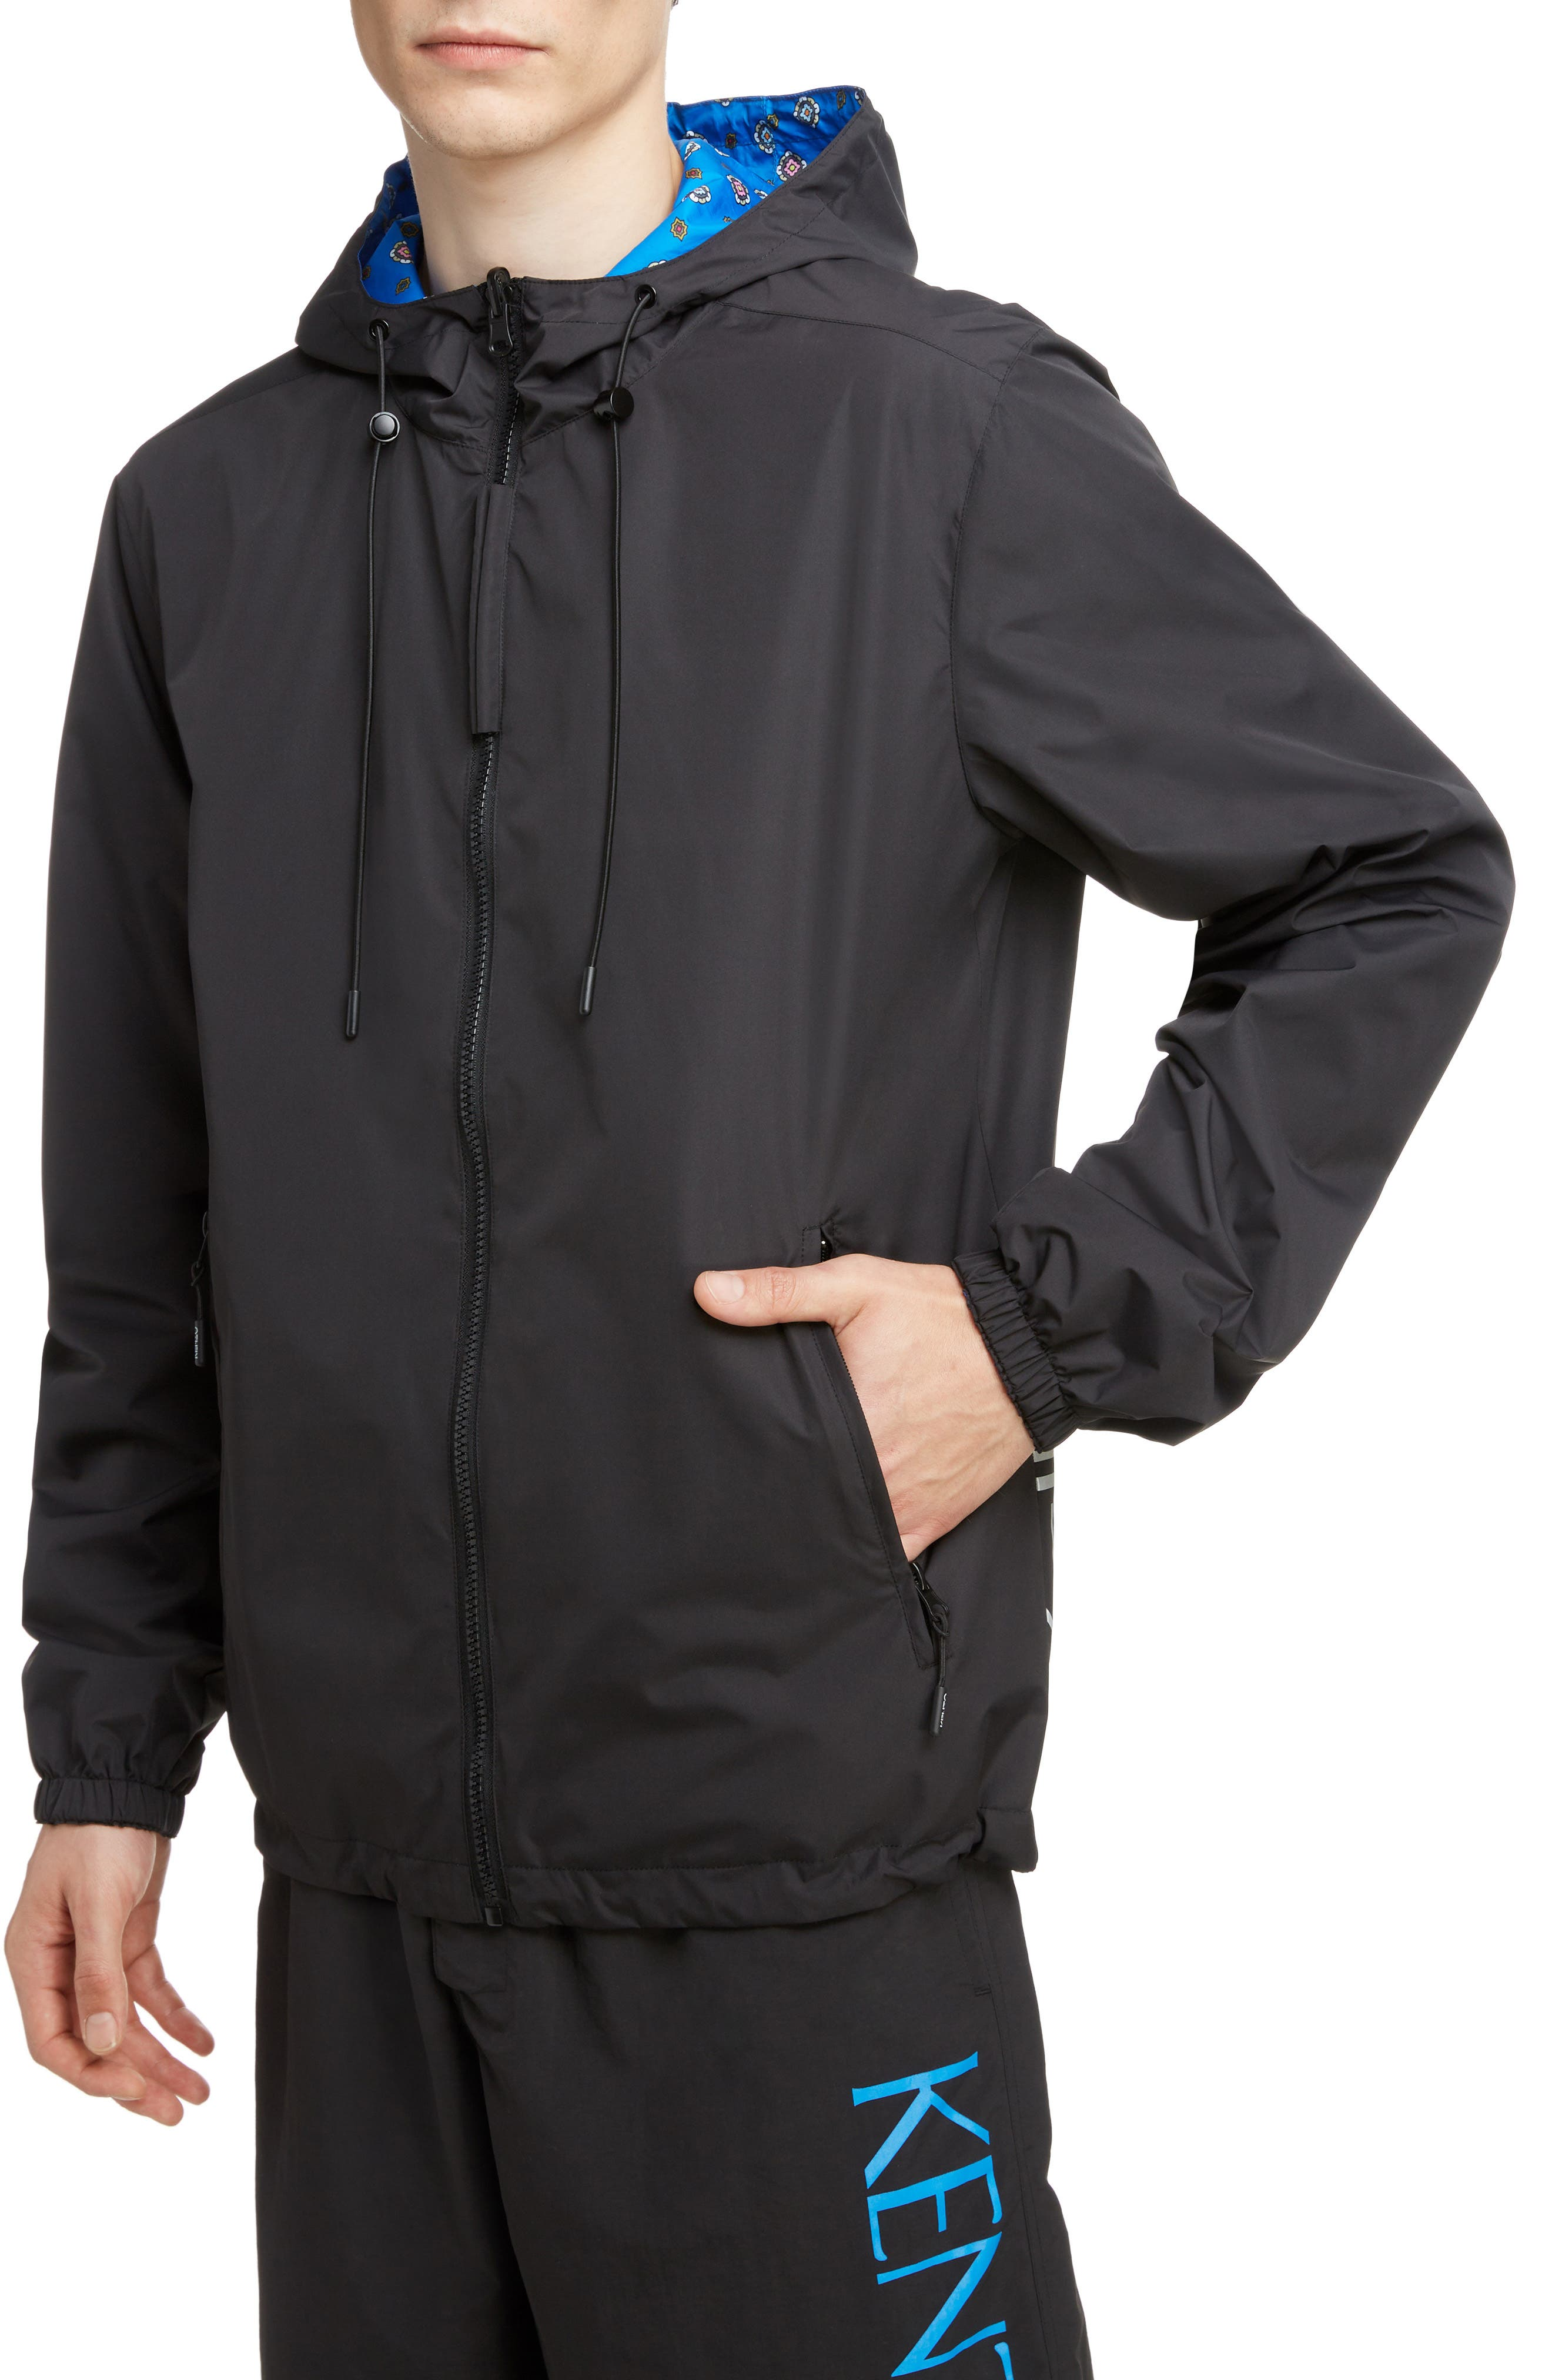 KENZO, Reversible Hooded Windbreaker, Alternate thumbnail 5, color, BLACK